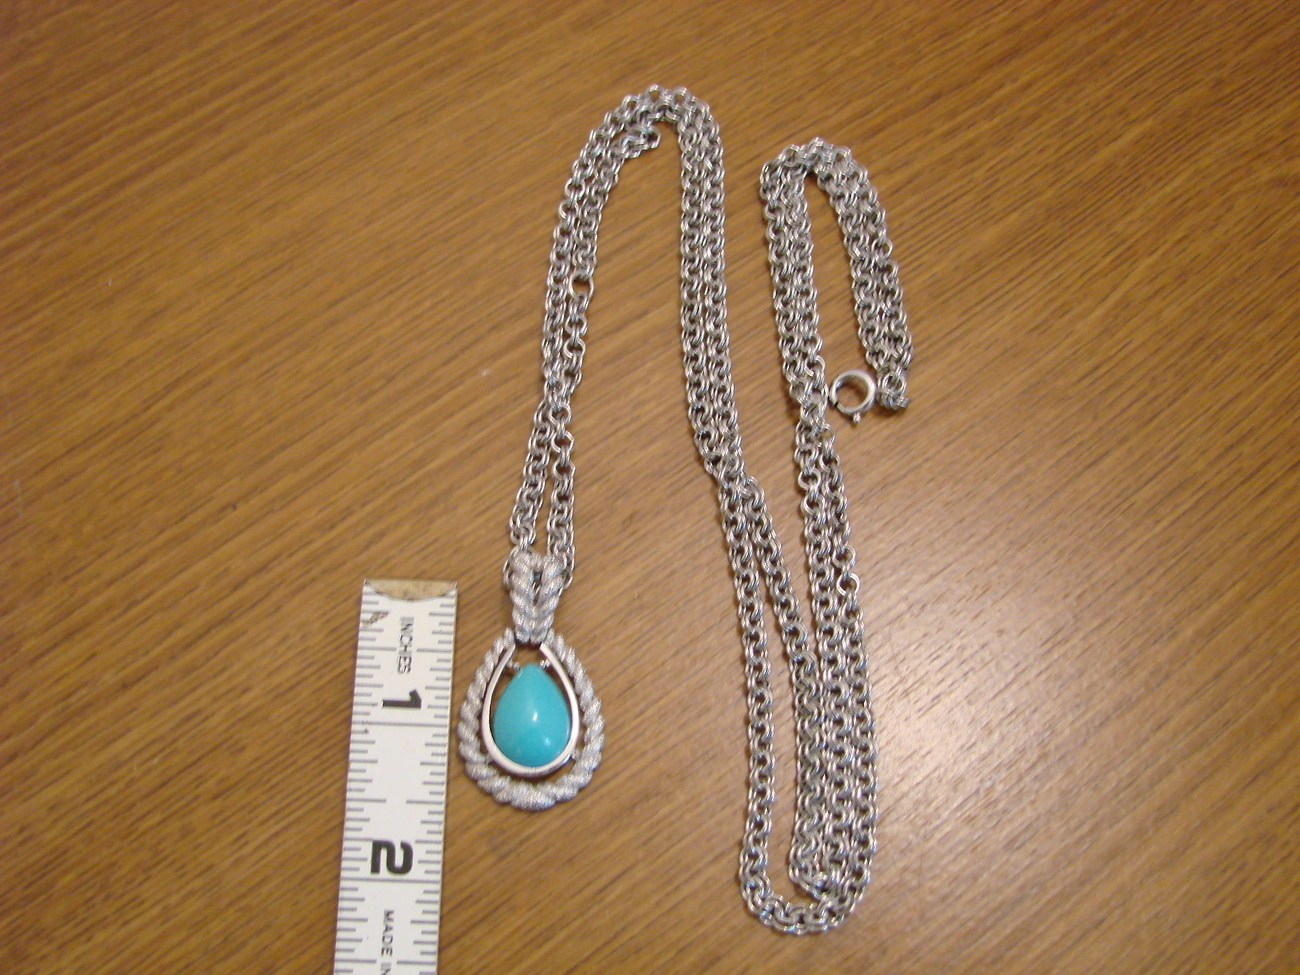 Primary image for Vintage Avon Silvertone Turquoise Pendant Necklace